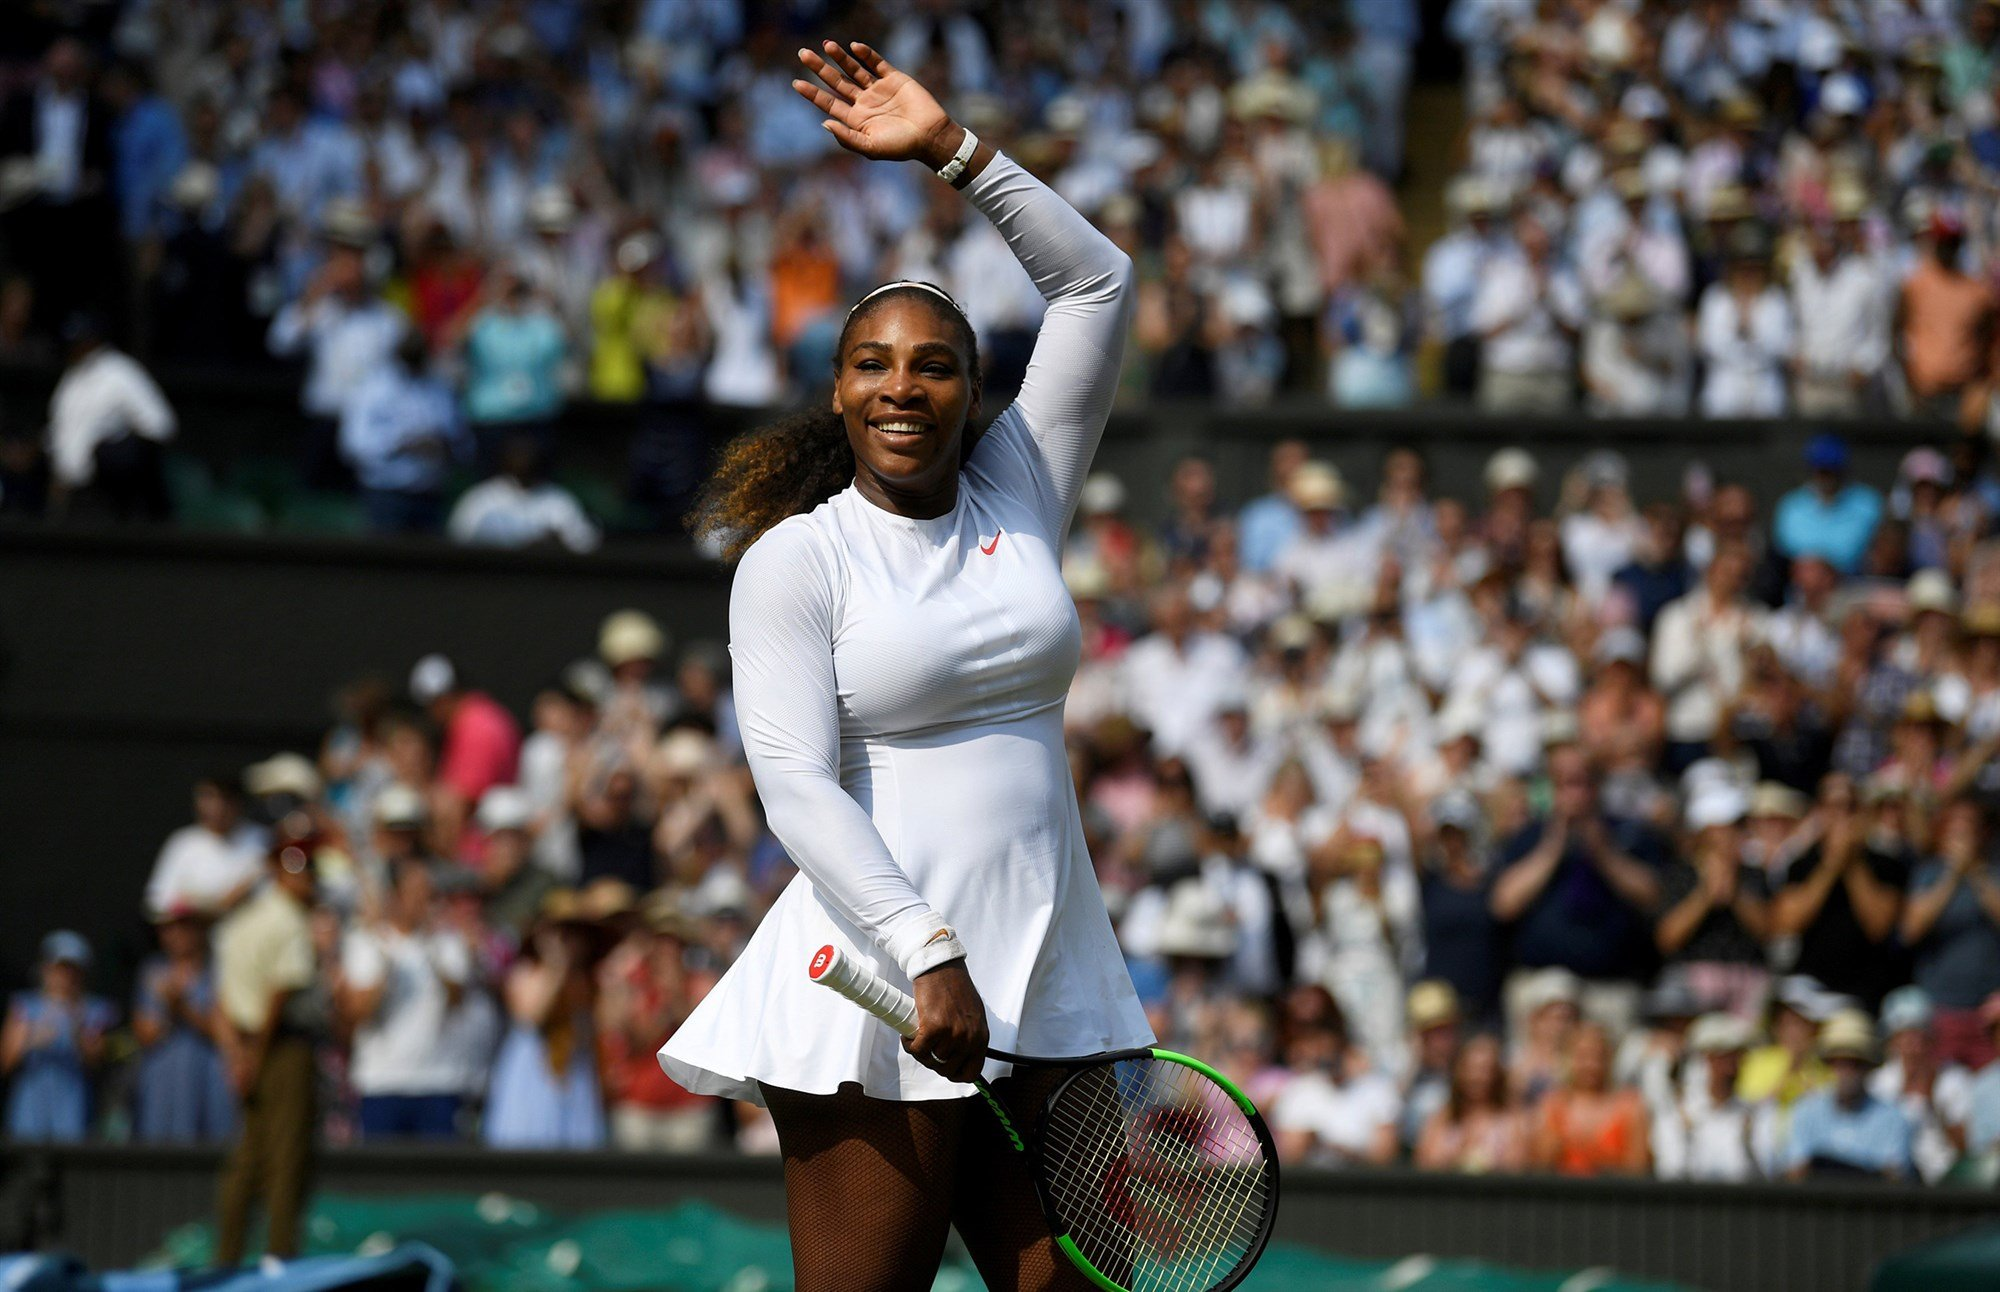 Serena Williams: How The Tennis Legend Stays Healthy